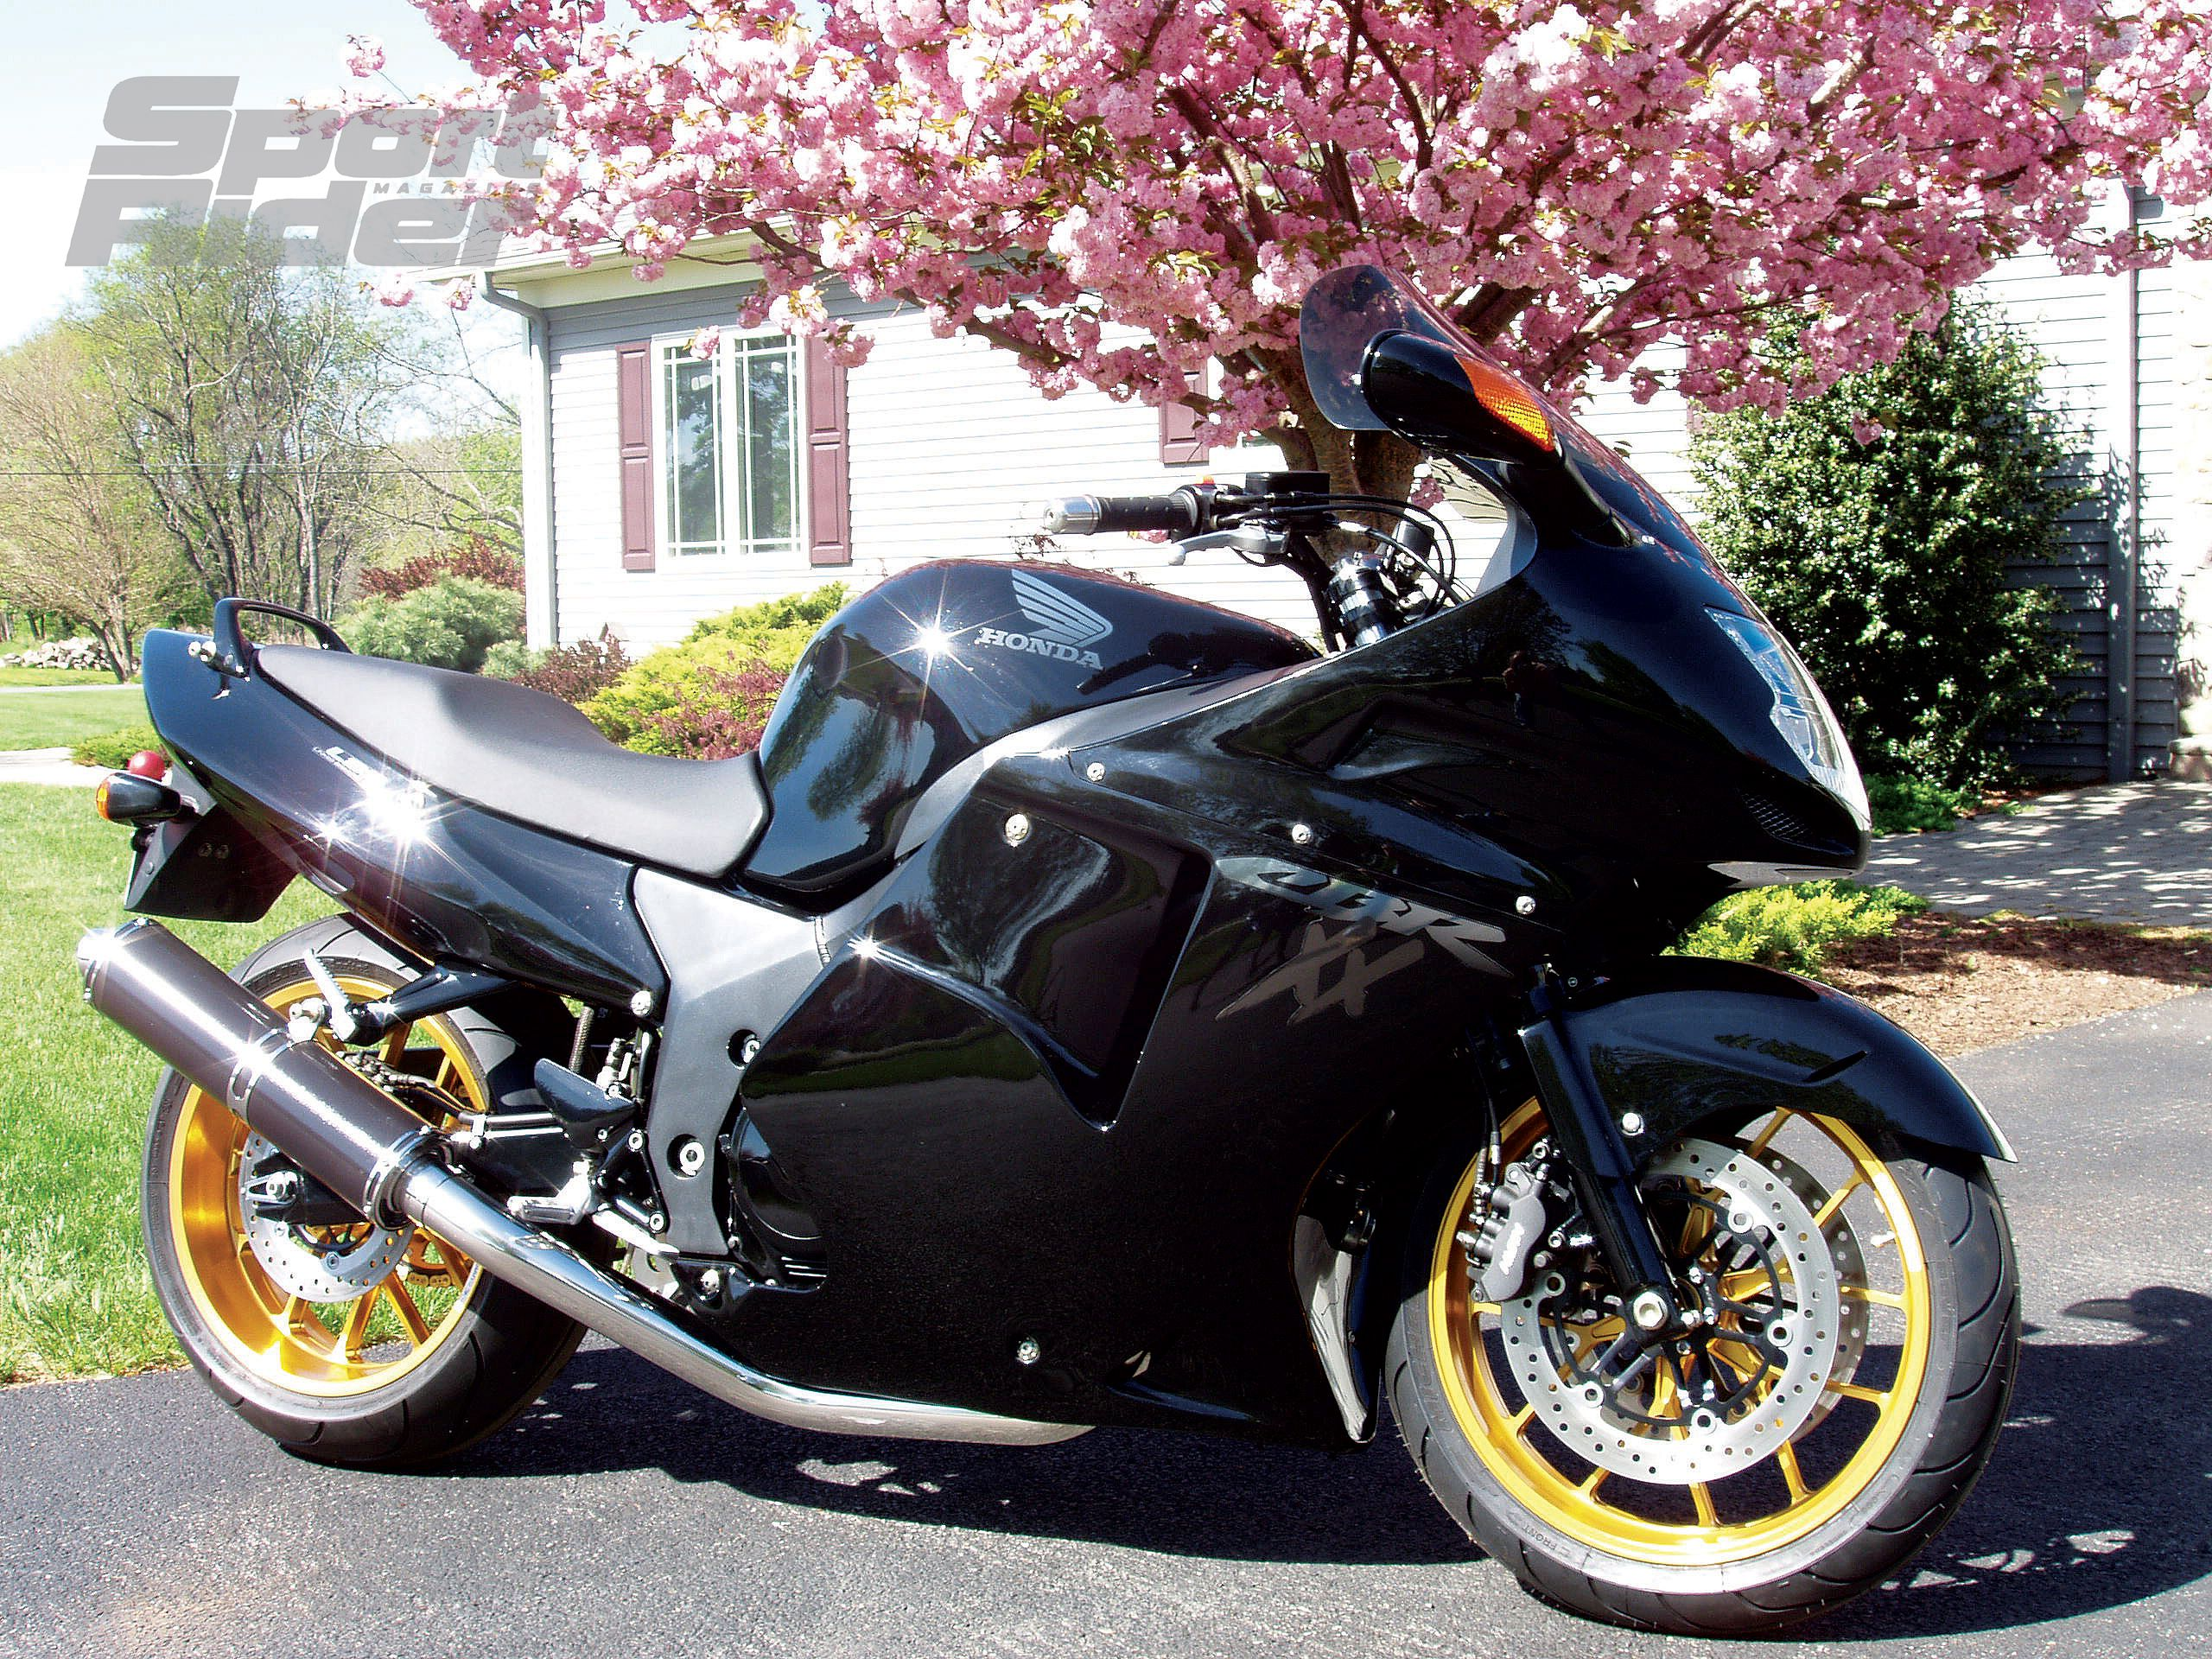 1997-2003 Honda CBR1100XX - Great Sportbikes of the Past | Cycle World